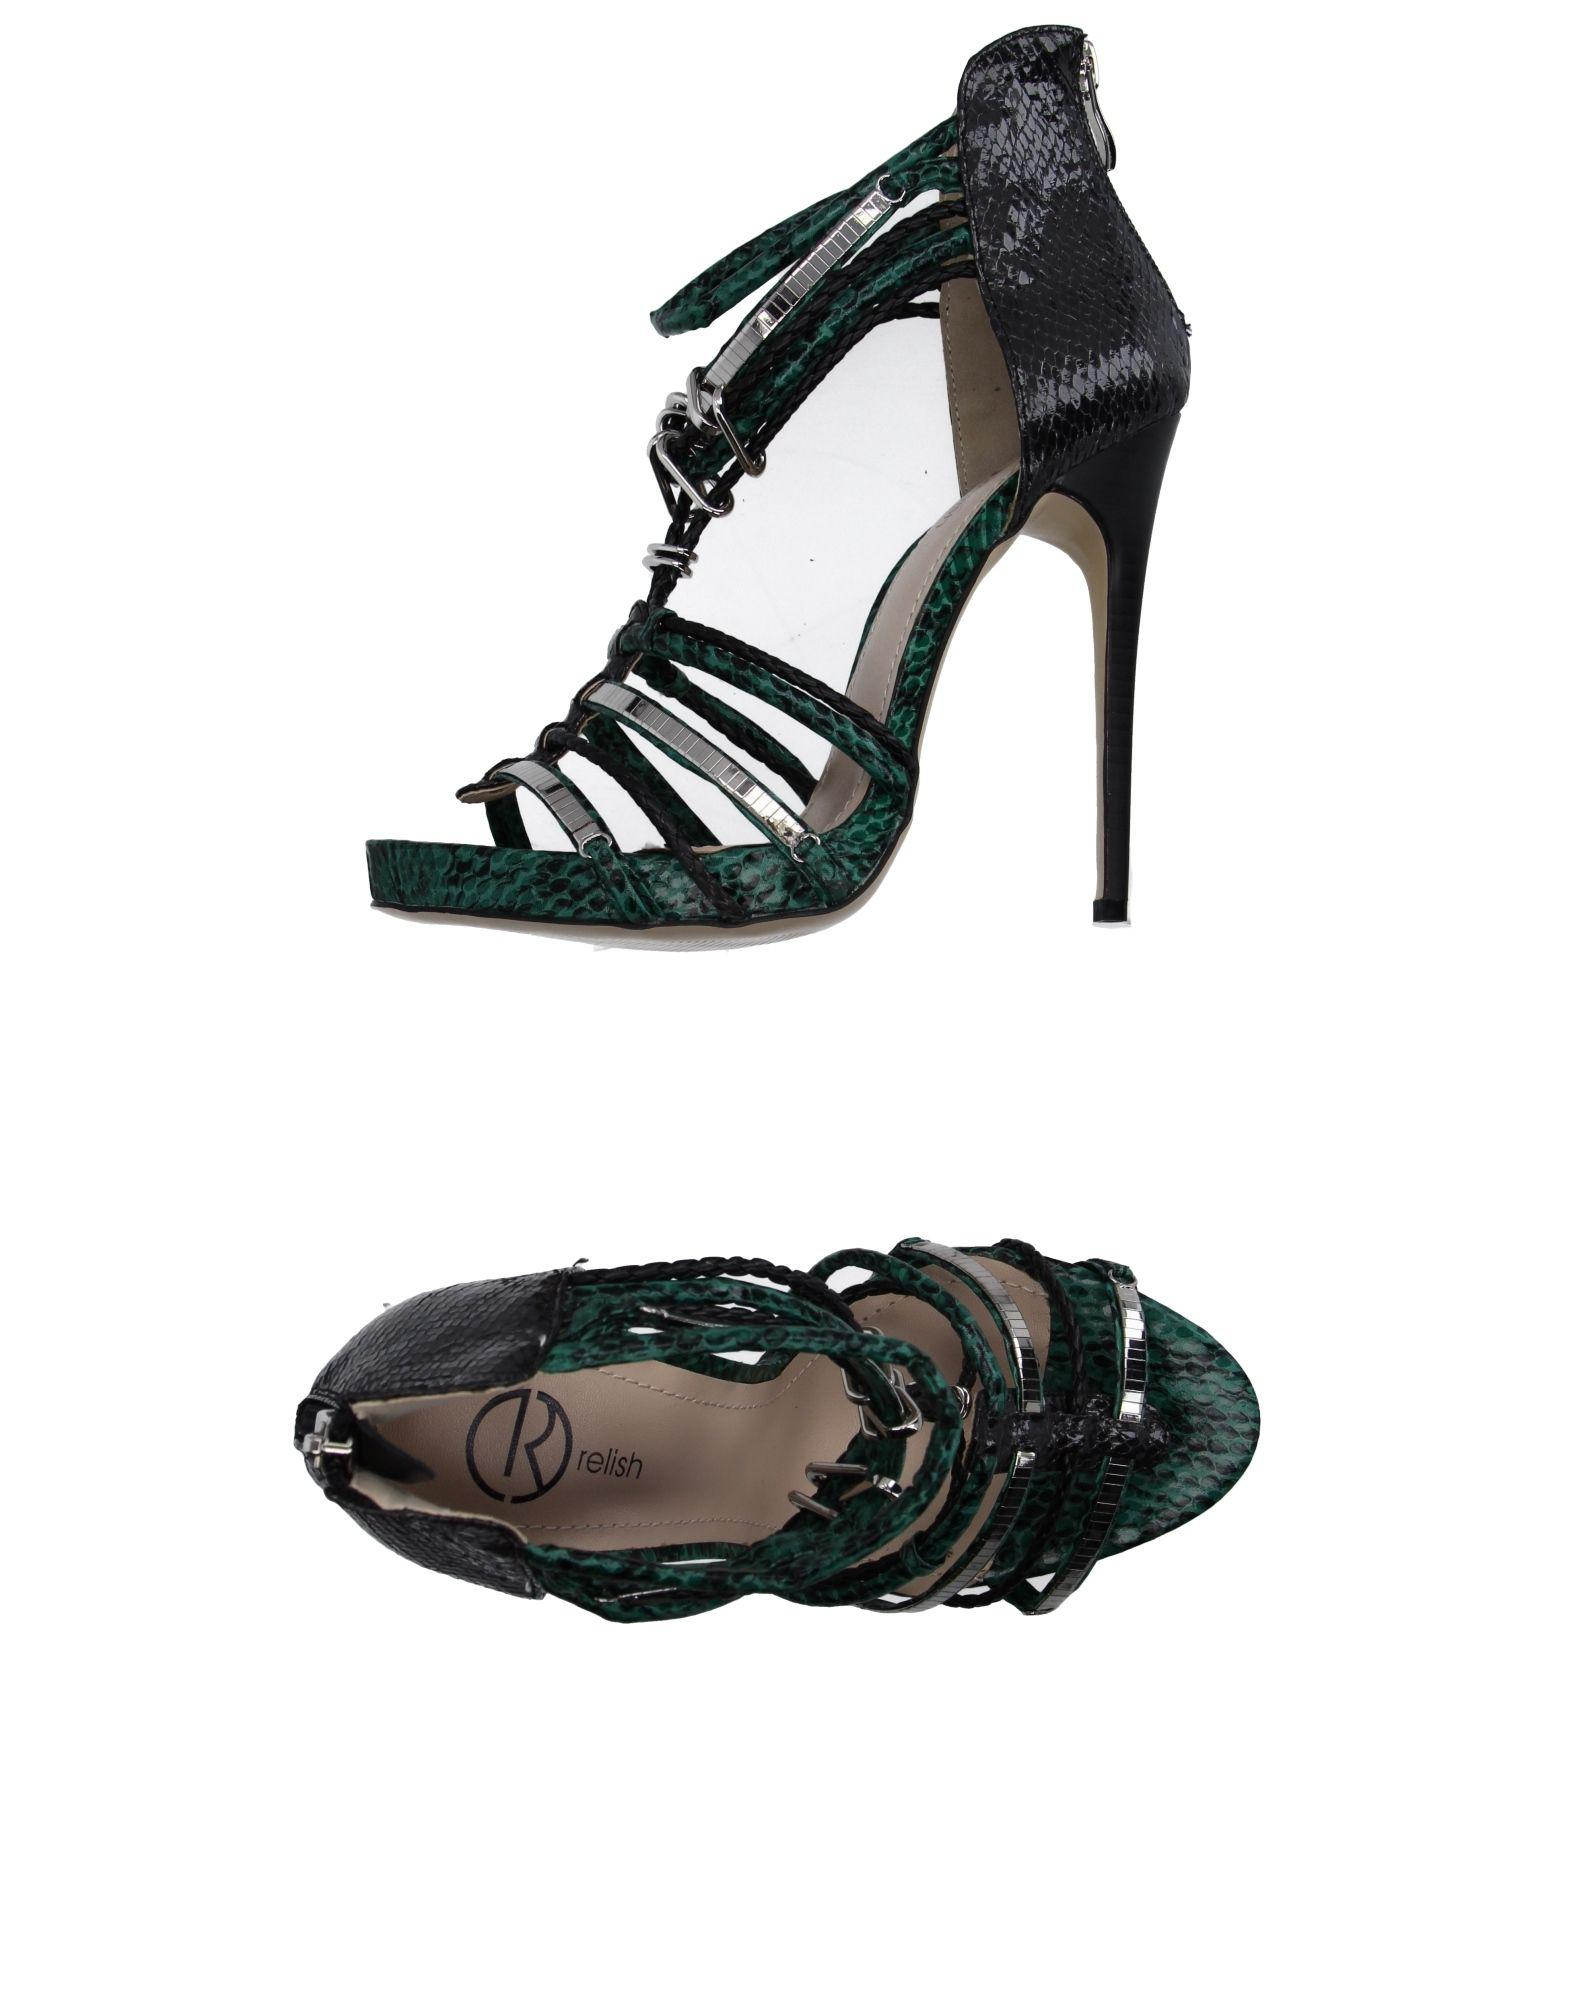 RELISH Sandals Emerald green Women